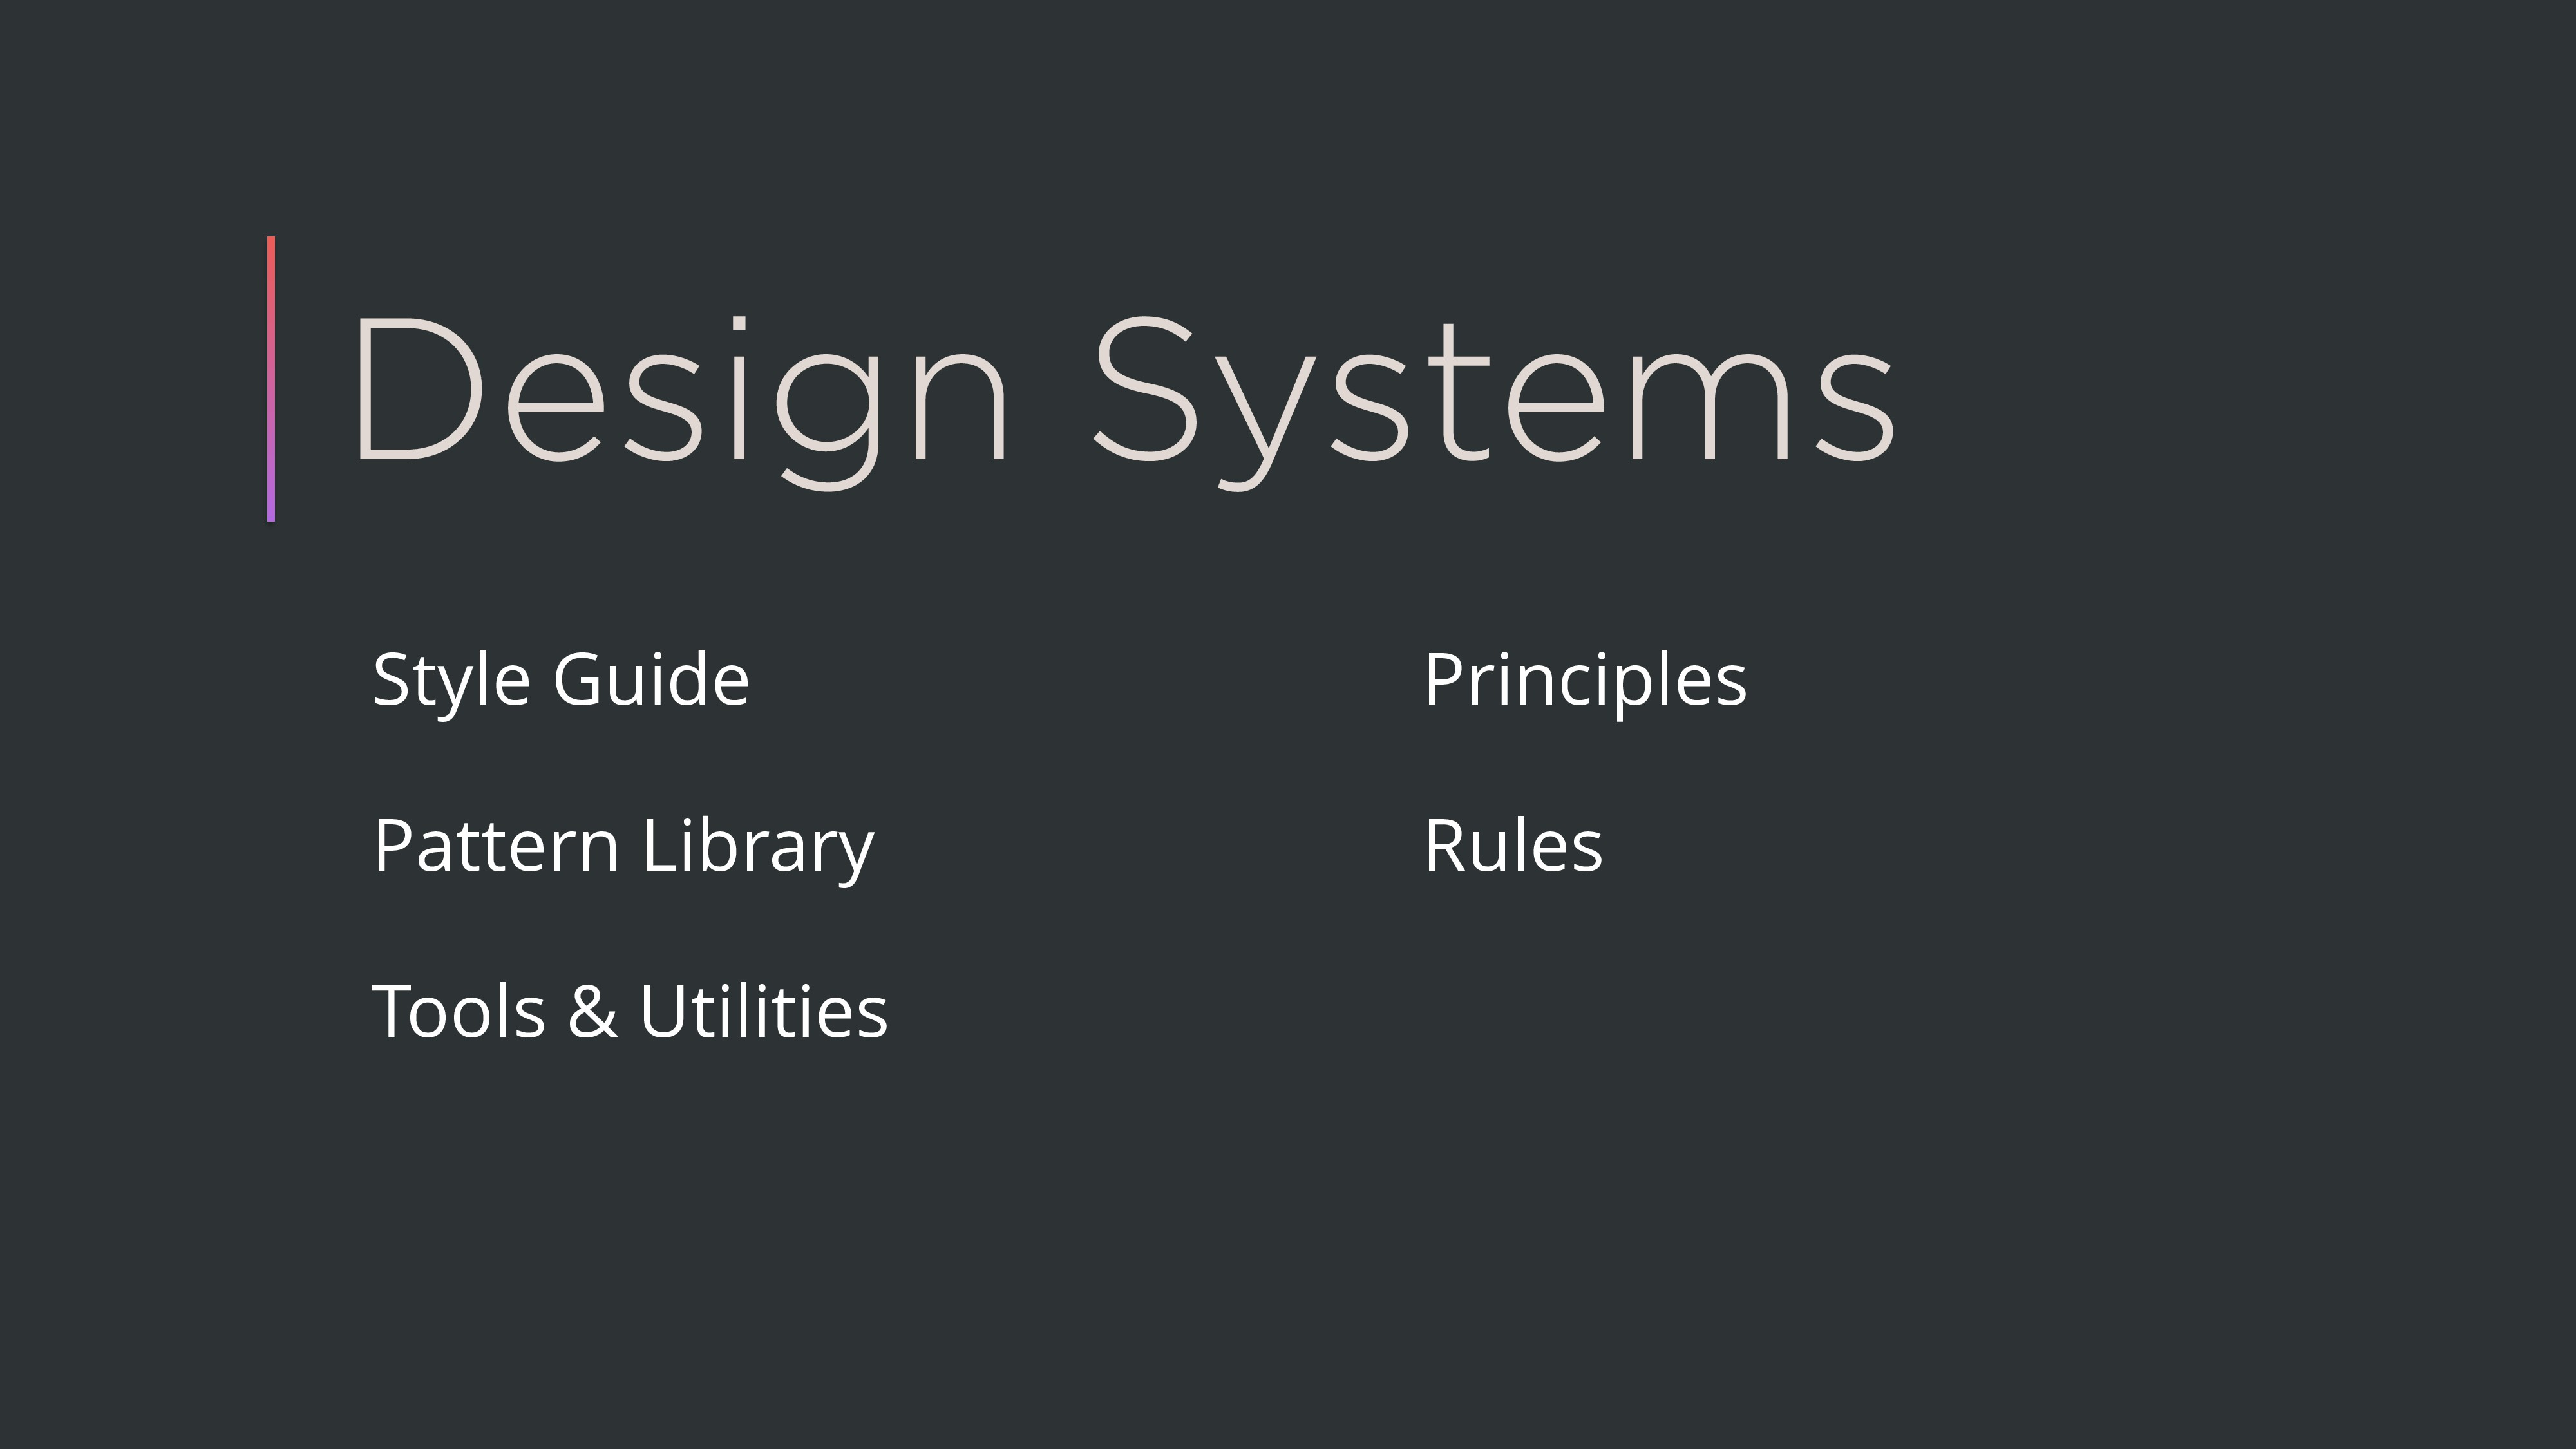 Design Systems Style Guide Pattern Library Tool...